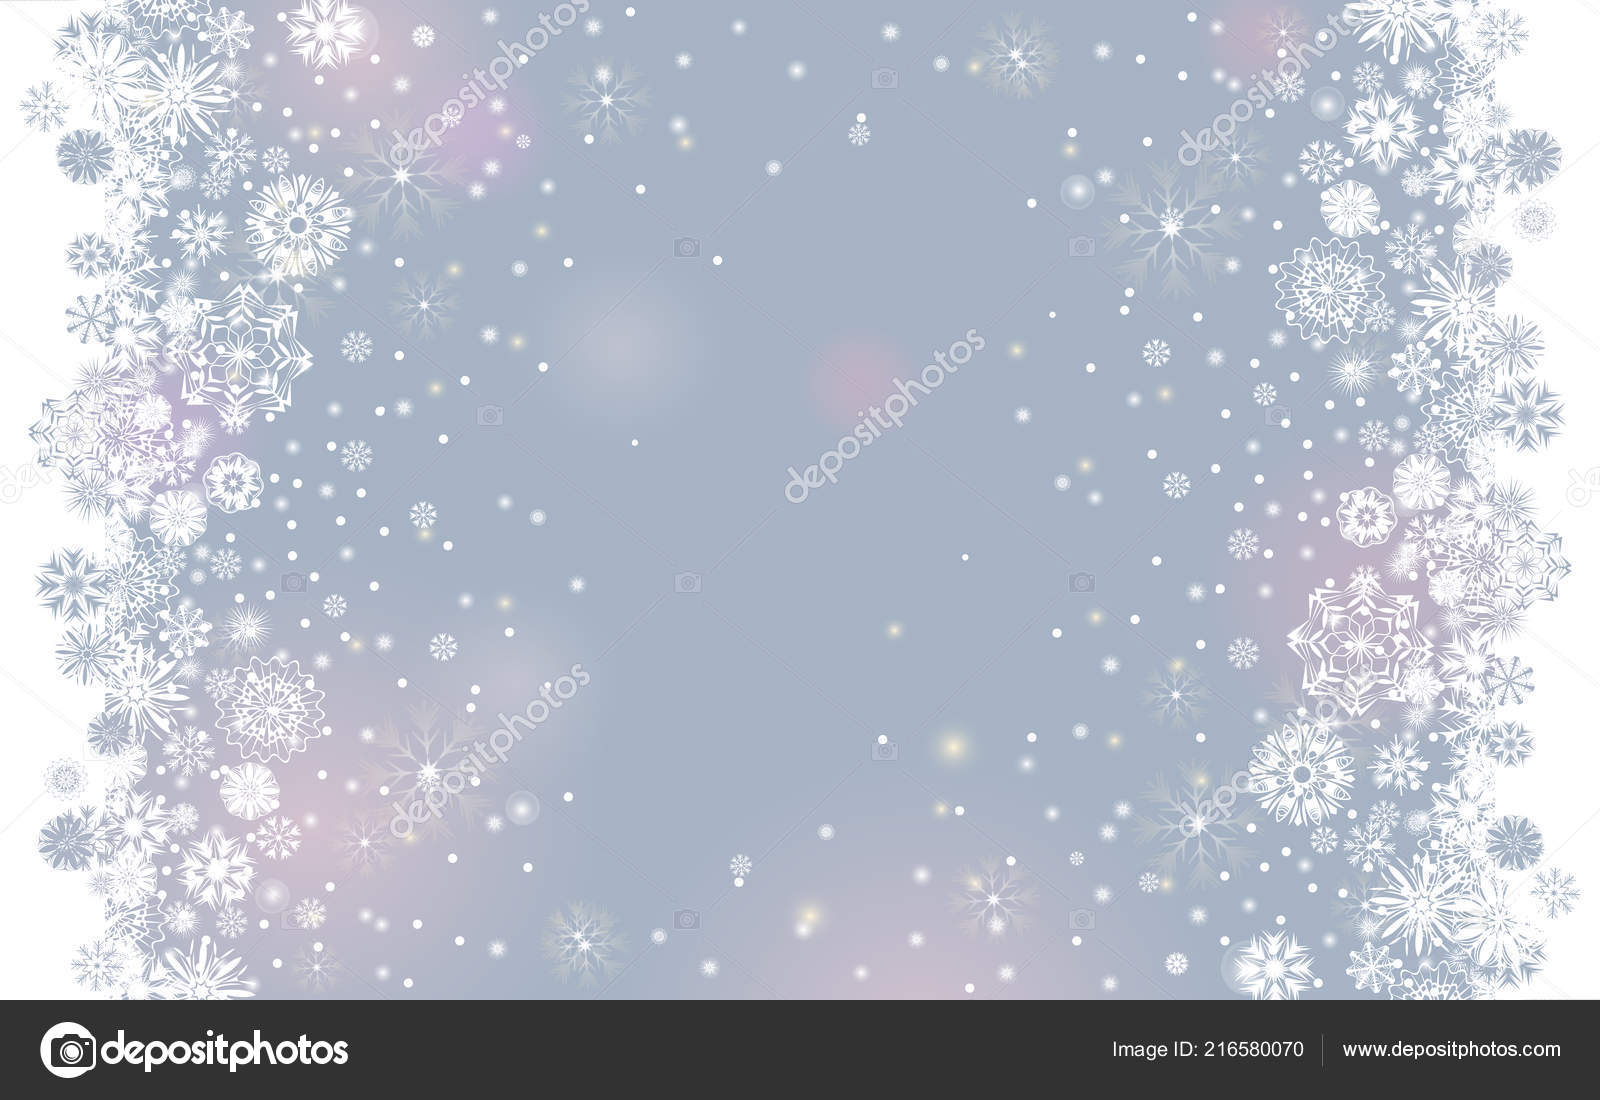 Falling Snow Border Light Tender Silver Grey Background